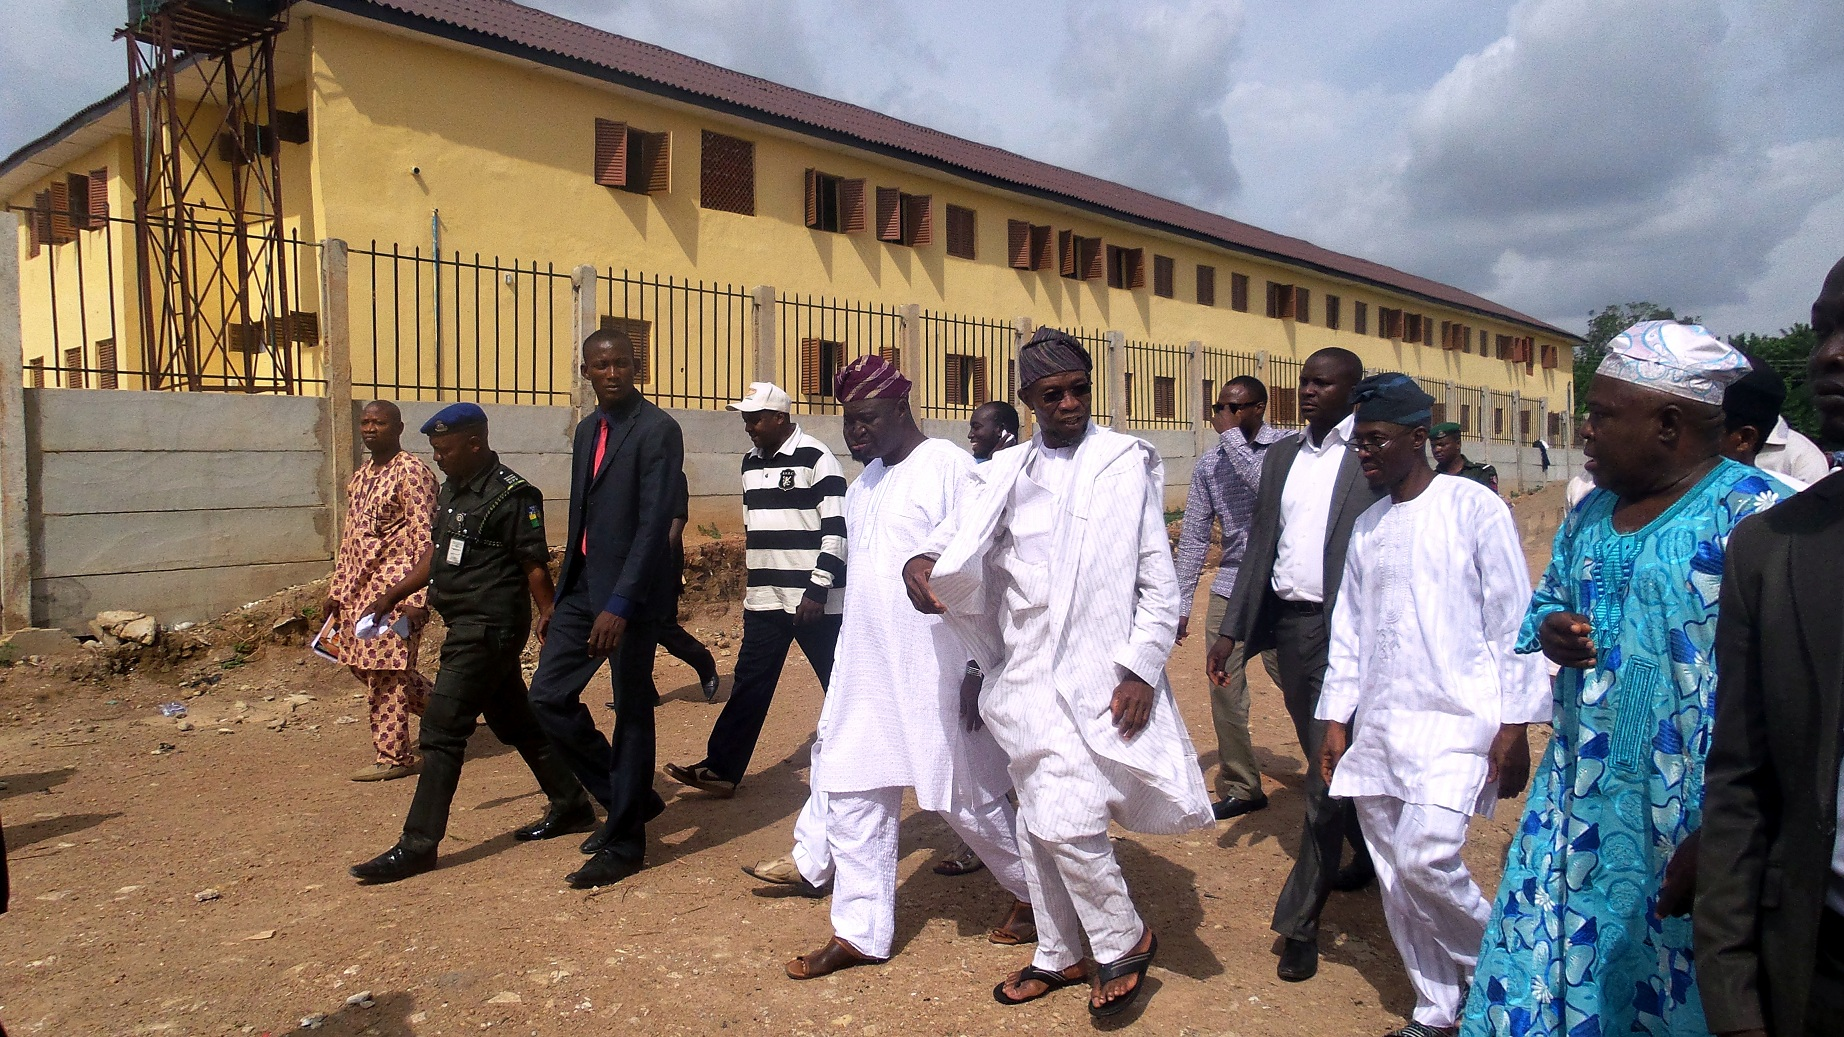 Governor State of Osun, Ogbeni Rauf Aregbesola (middle); Senator Bayo Salami (5th left); Education Liaison officer, Osogbo Local Government, Alhaji Sulaiman Afariogun (right); Governor's Aids, Mr Adebayo Young (2nd right) and others, during an inspection visit to the newly completed Laro Timehin Middle School, Osogbo on Friday 23-05-2014